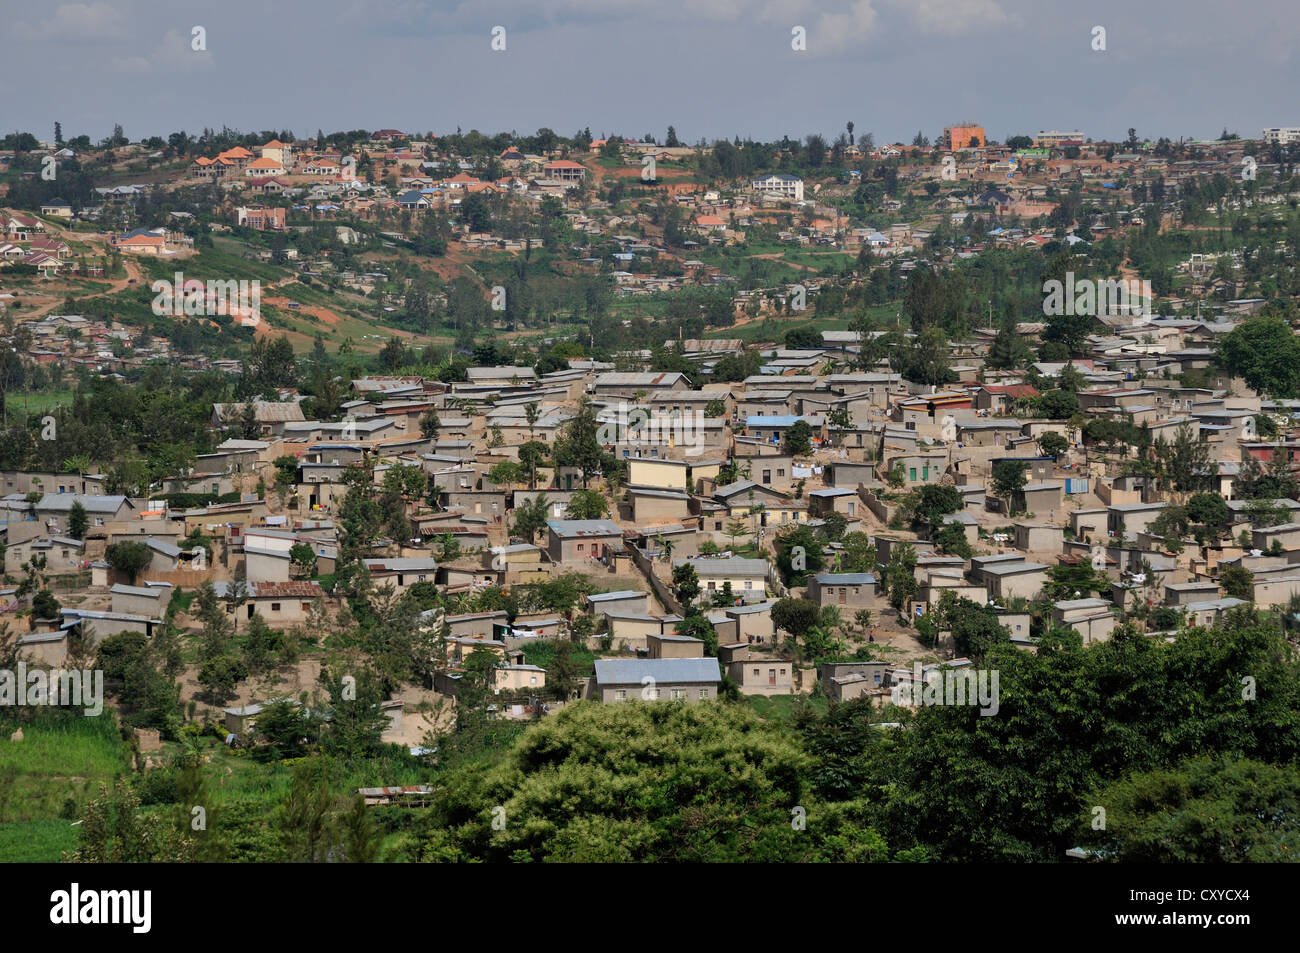 View of the suburban districts of Kigali, Rwanda, Africa - Stock Image